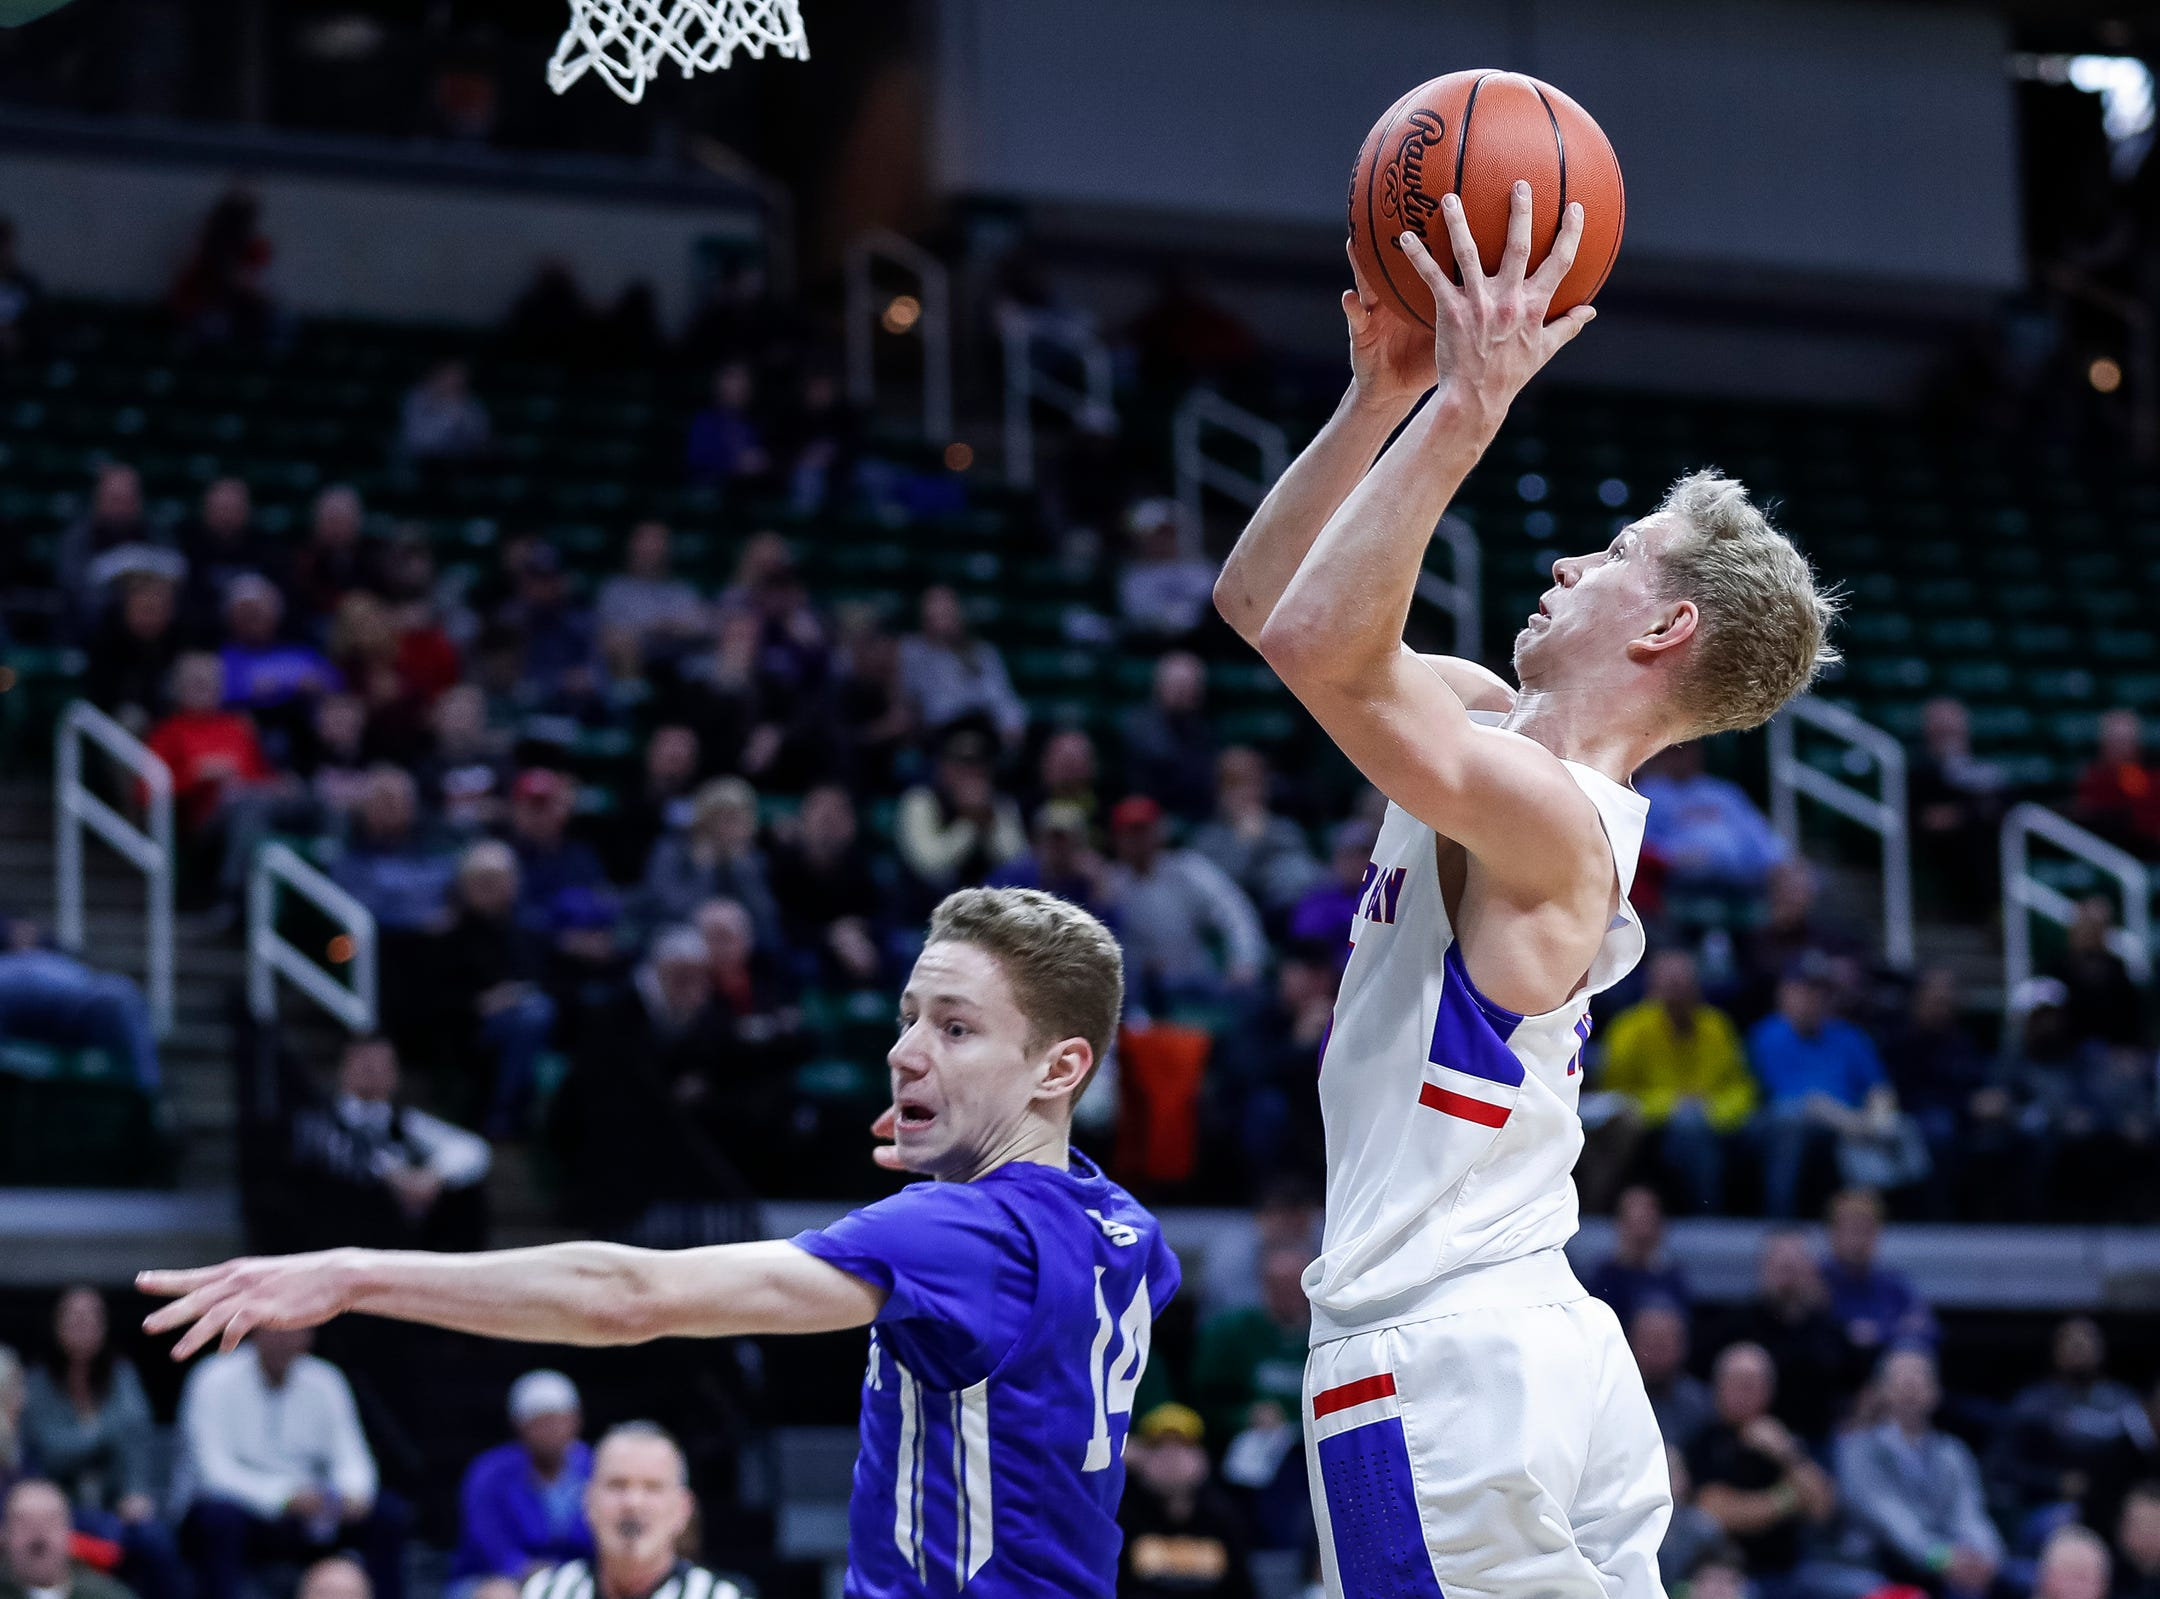 Dollar Bay Connor LeClaire (13) makes a layup against Southfield Christian's Noah Rheker (14) during the first half of MHSAA Division 4 semifinal at the Breslin Center in East Lansing, Thursday, March 14, 2019.